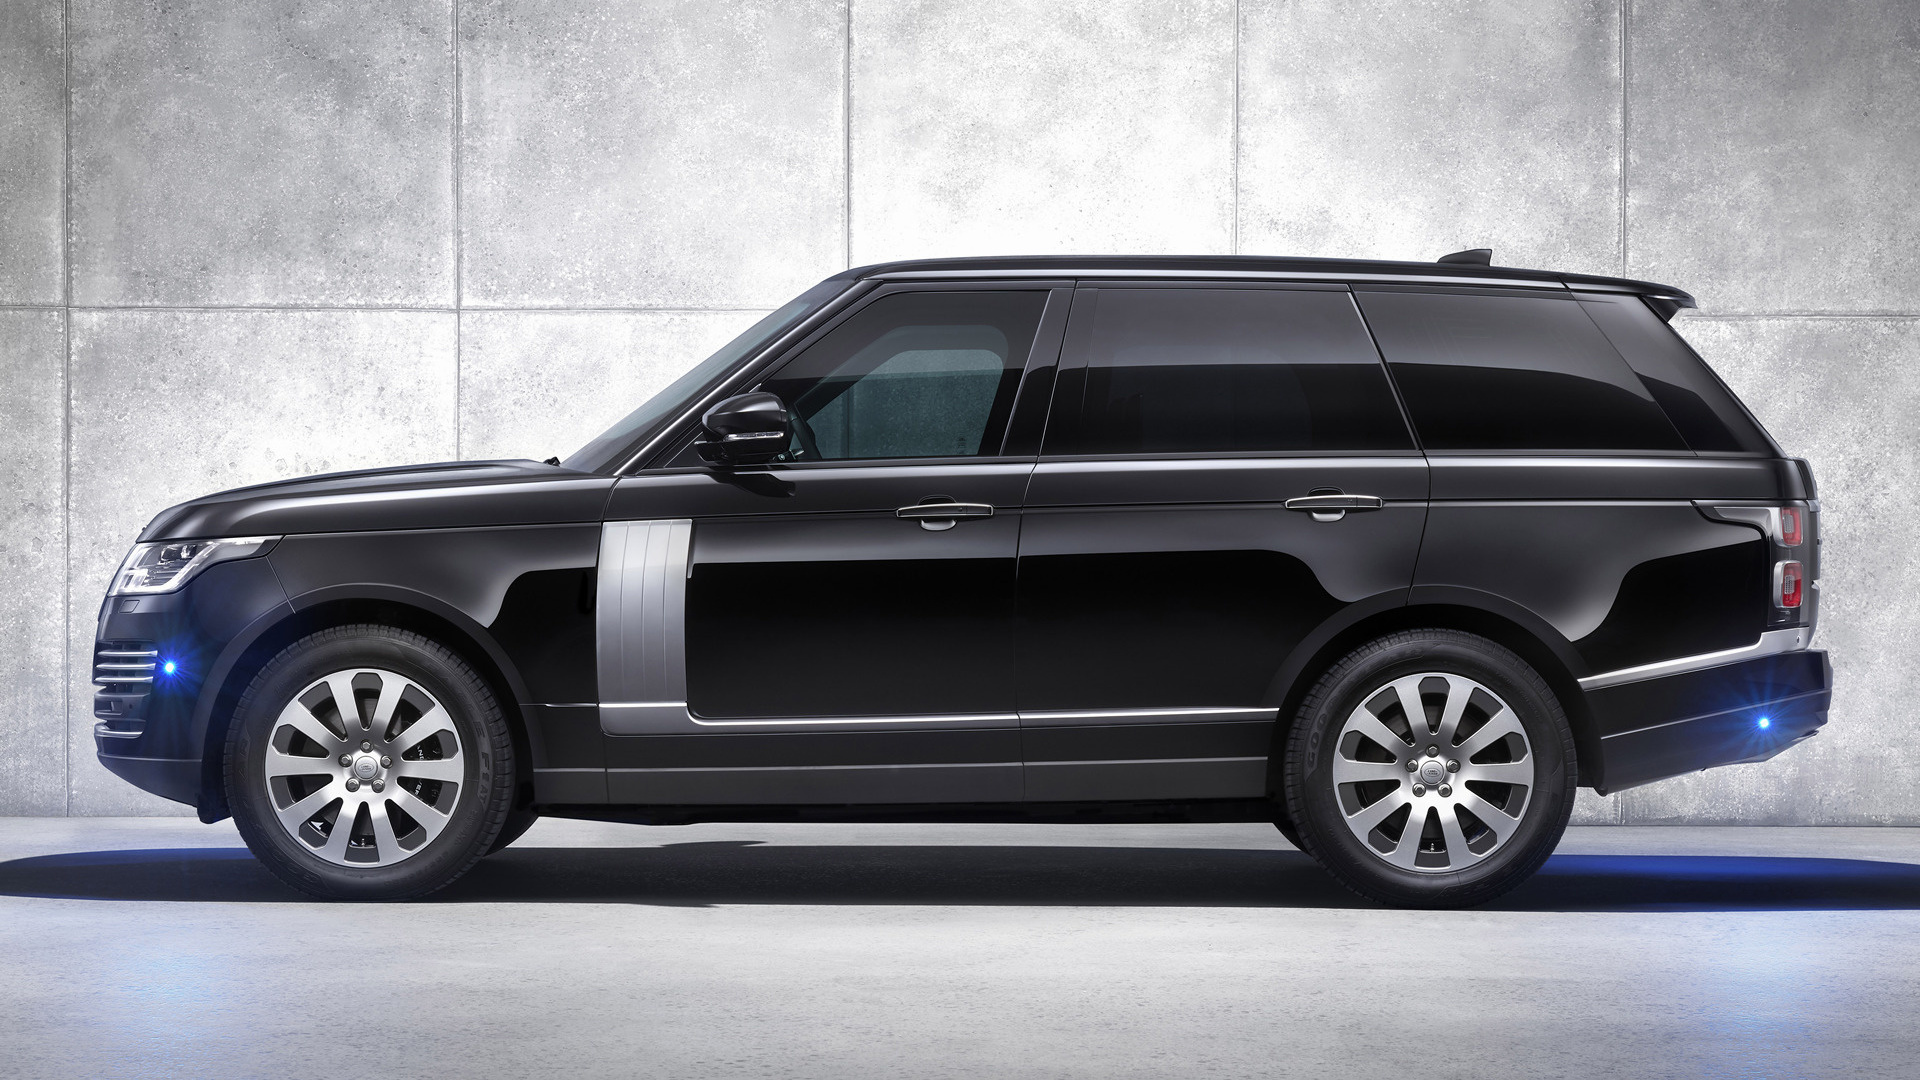 Range Rover Autobiography >> 2019 Range Rover Sentinel - Wallpapers and HD Images | Car ...